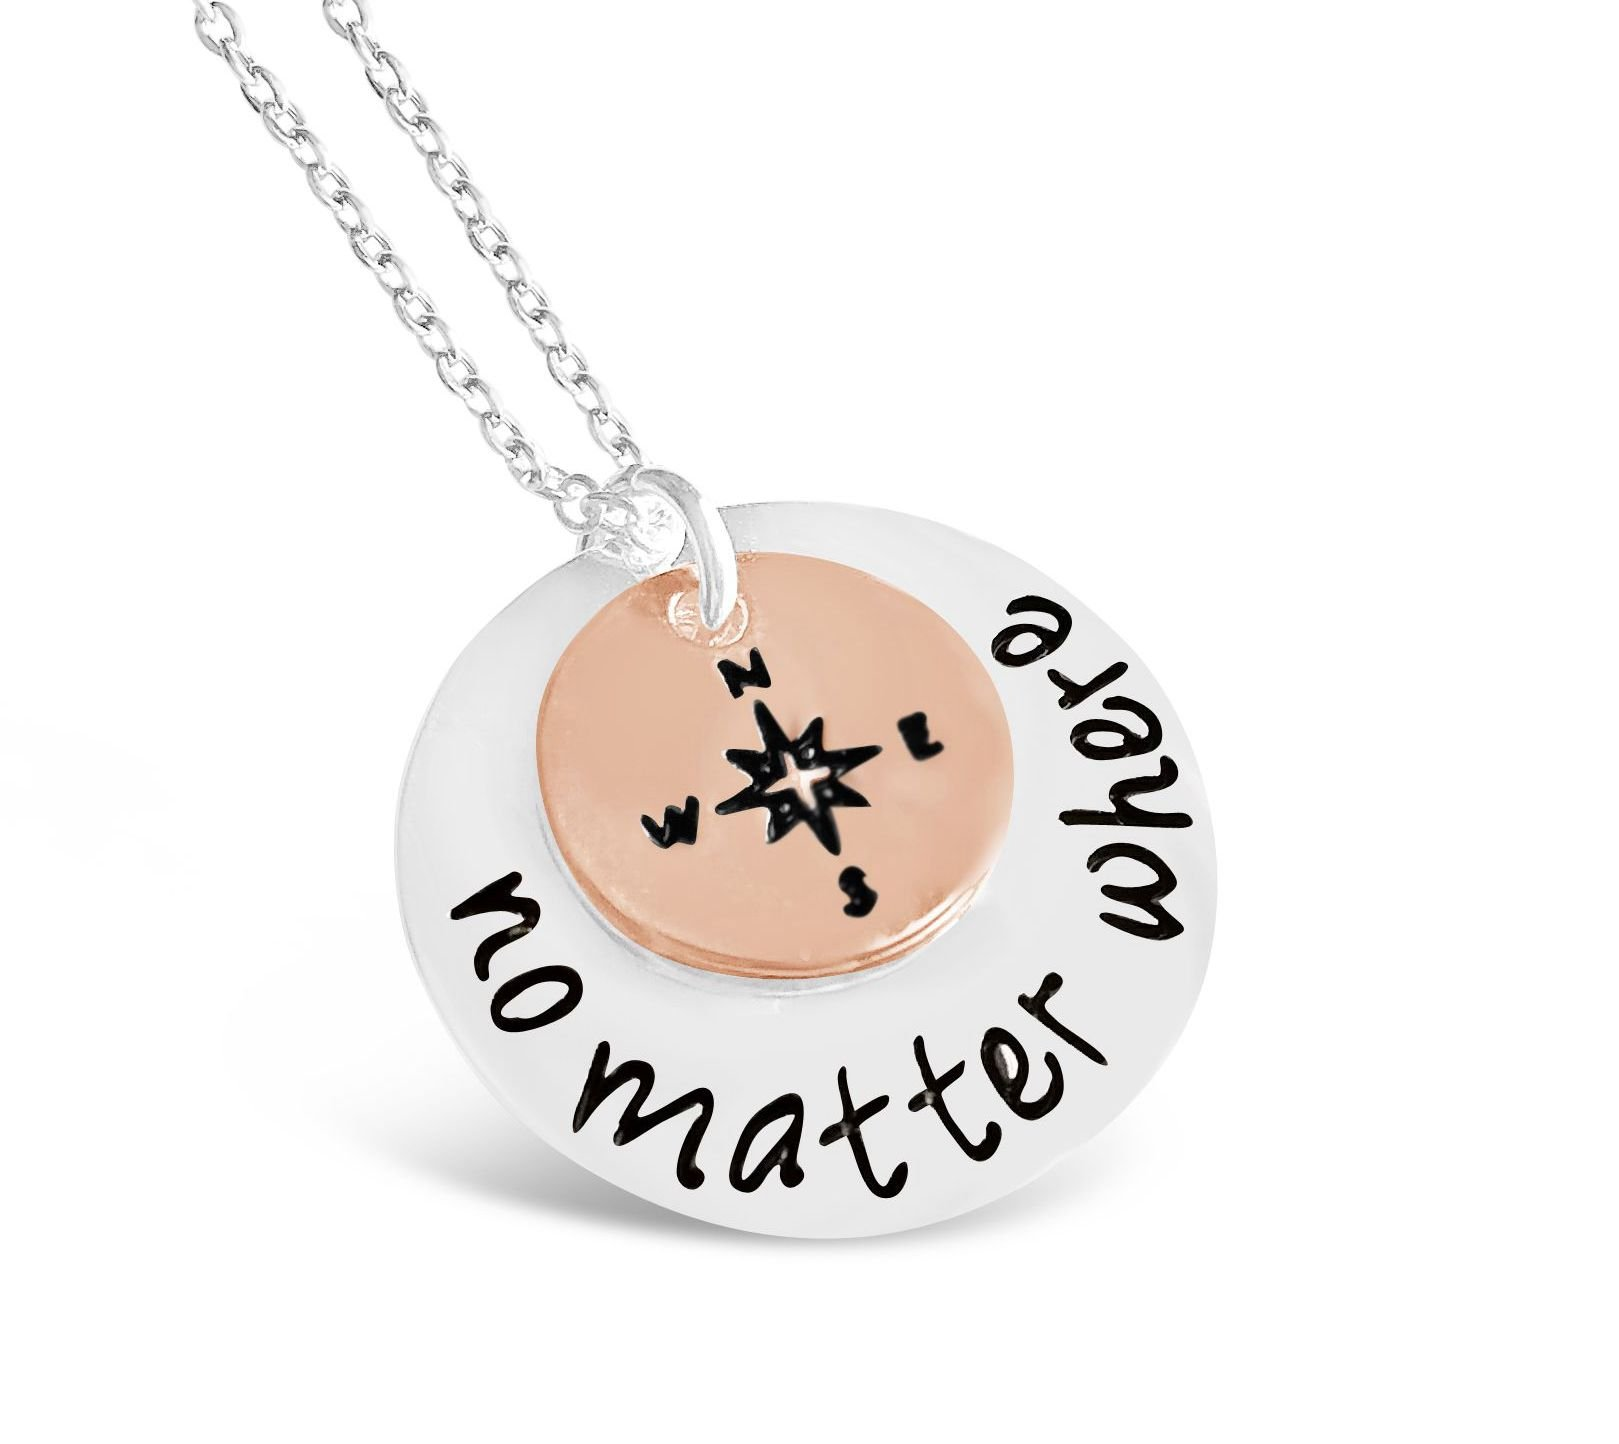 Rosa Vila No Matter Where Compass Necklace for Women, Great as a Cousin Necklace or Long Distance Friendship Necklace, Perfect for Bridesmaids, Best Friends, and Women with Wanderlust